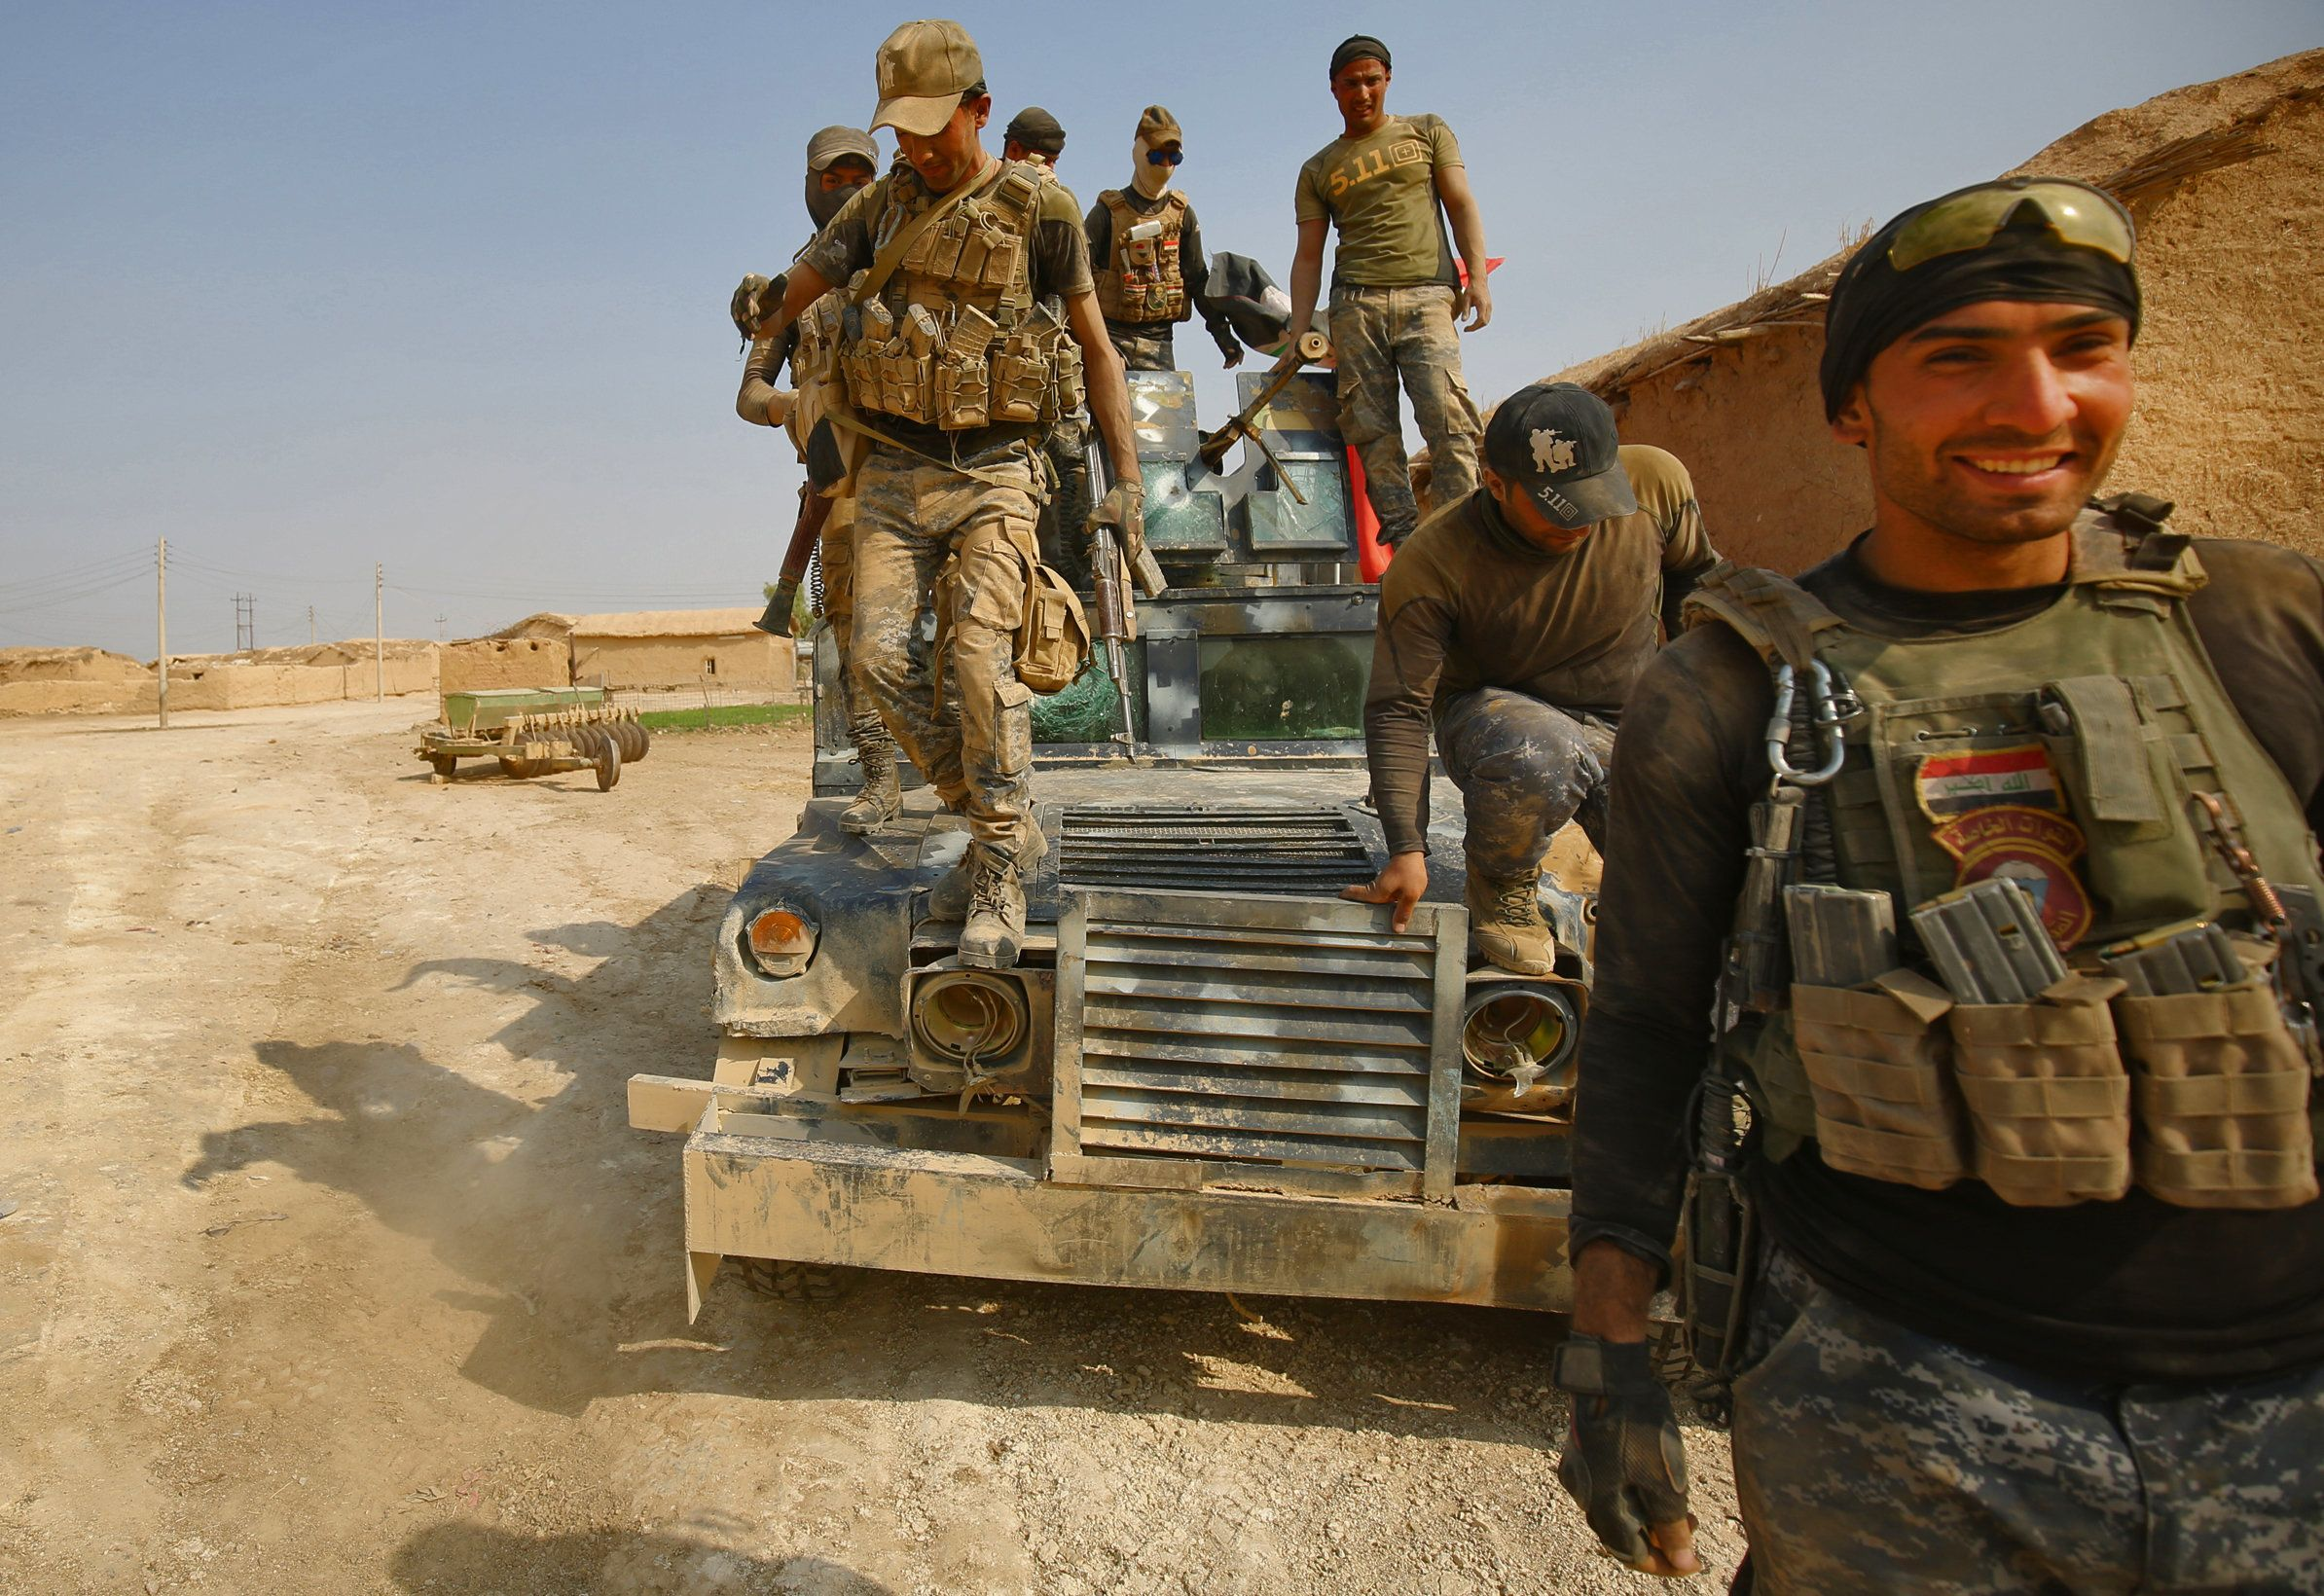 Mosul Could Be A Make Or Break Battle For